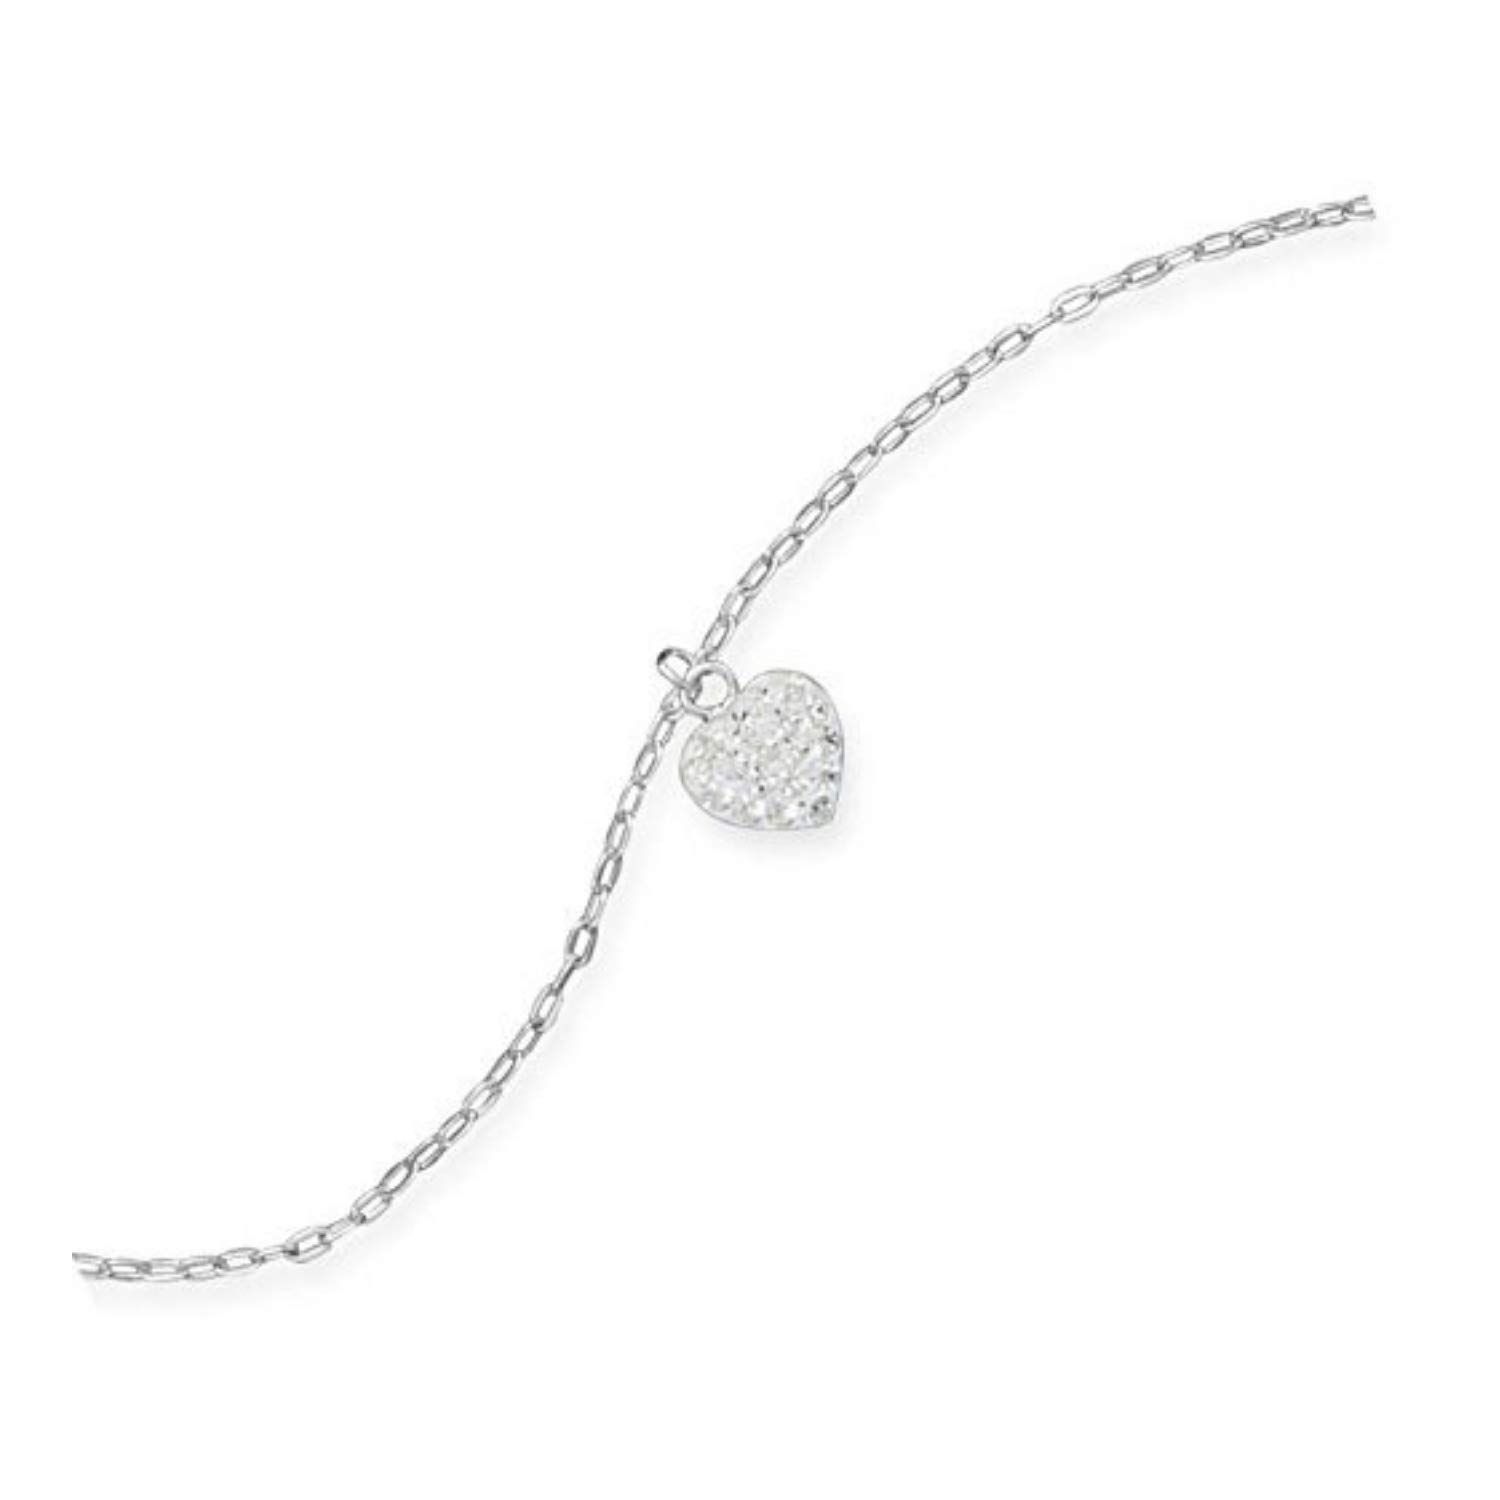 9 1 Crystal Heart Charm Anklet Womens Ankle Bracelet Anklet Fashion Jewelry Sterling Silver